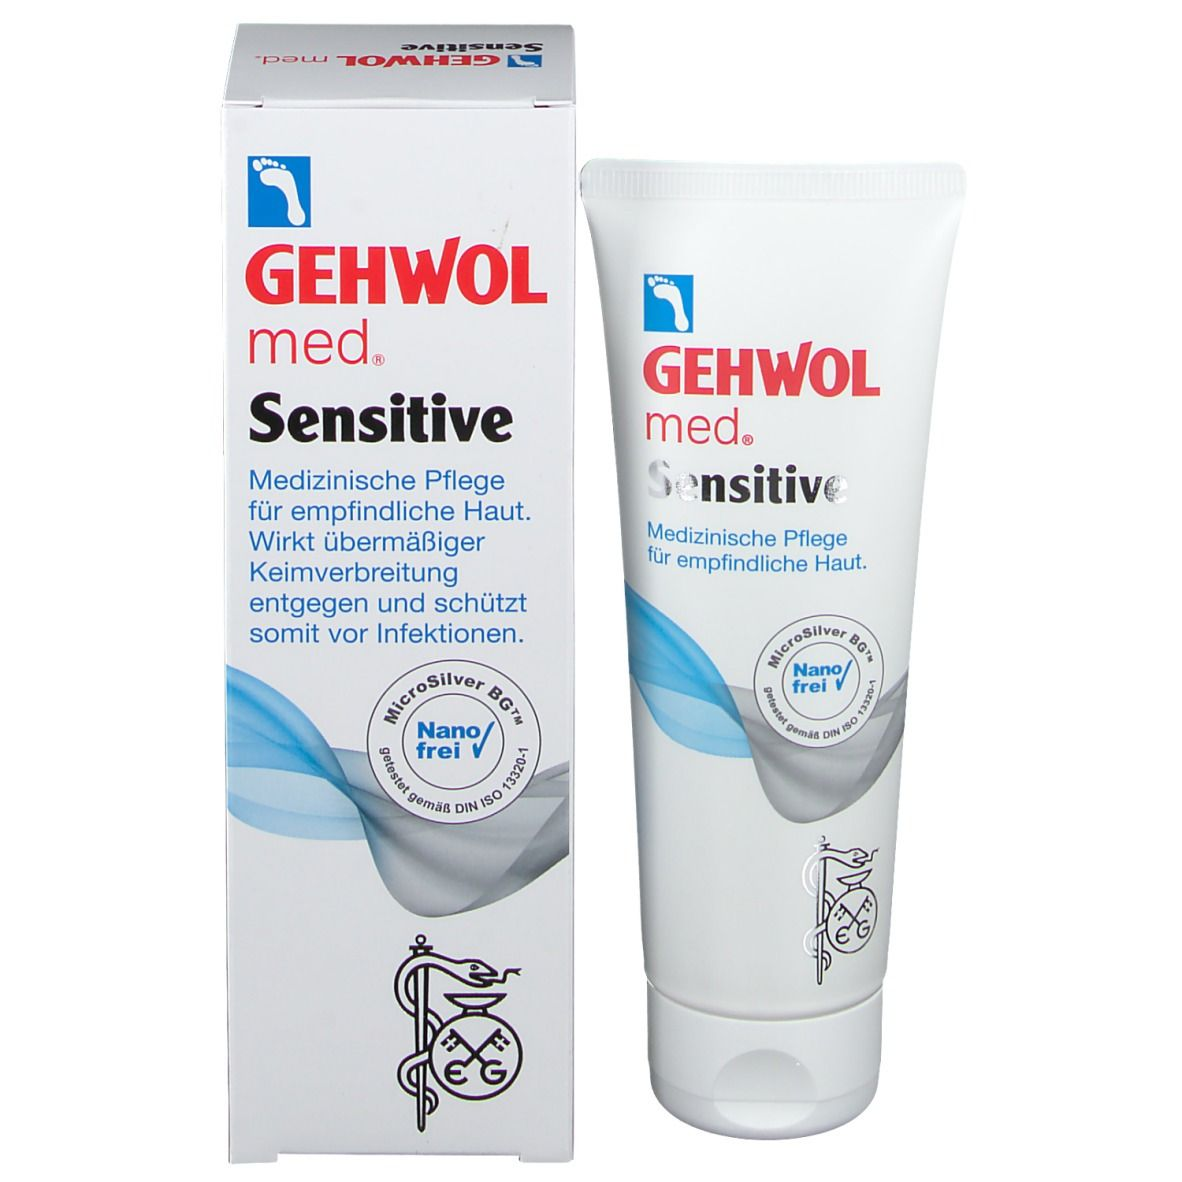 GEHWOL med® Sensitive